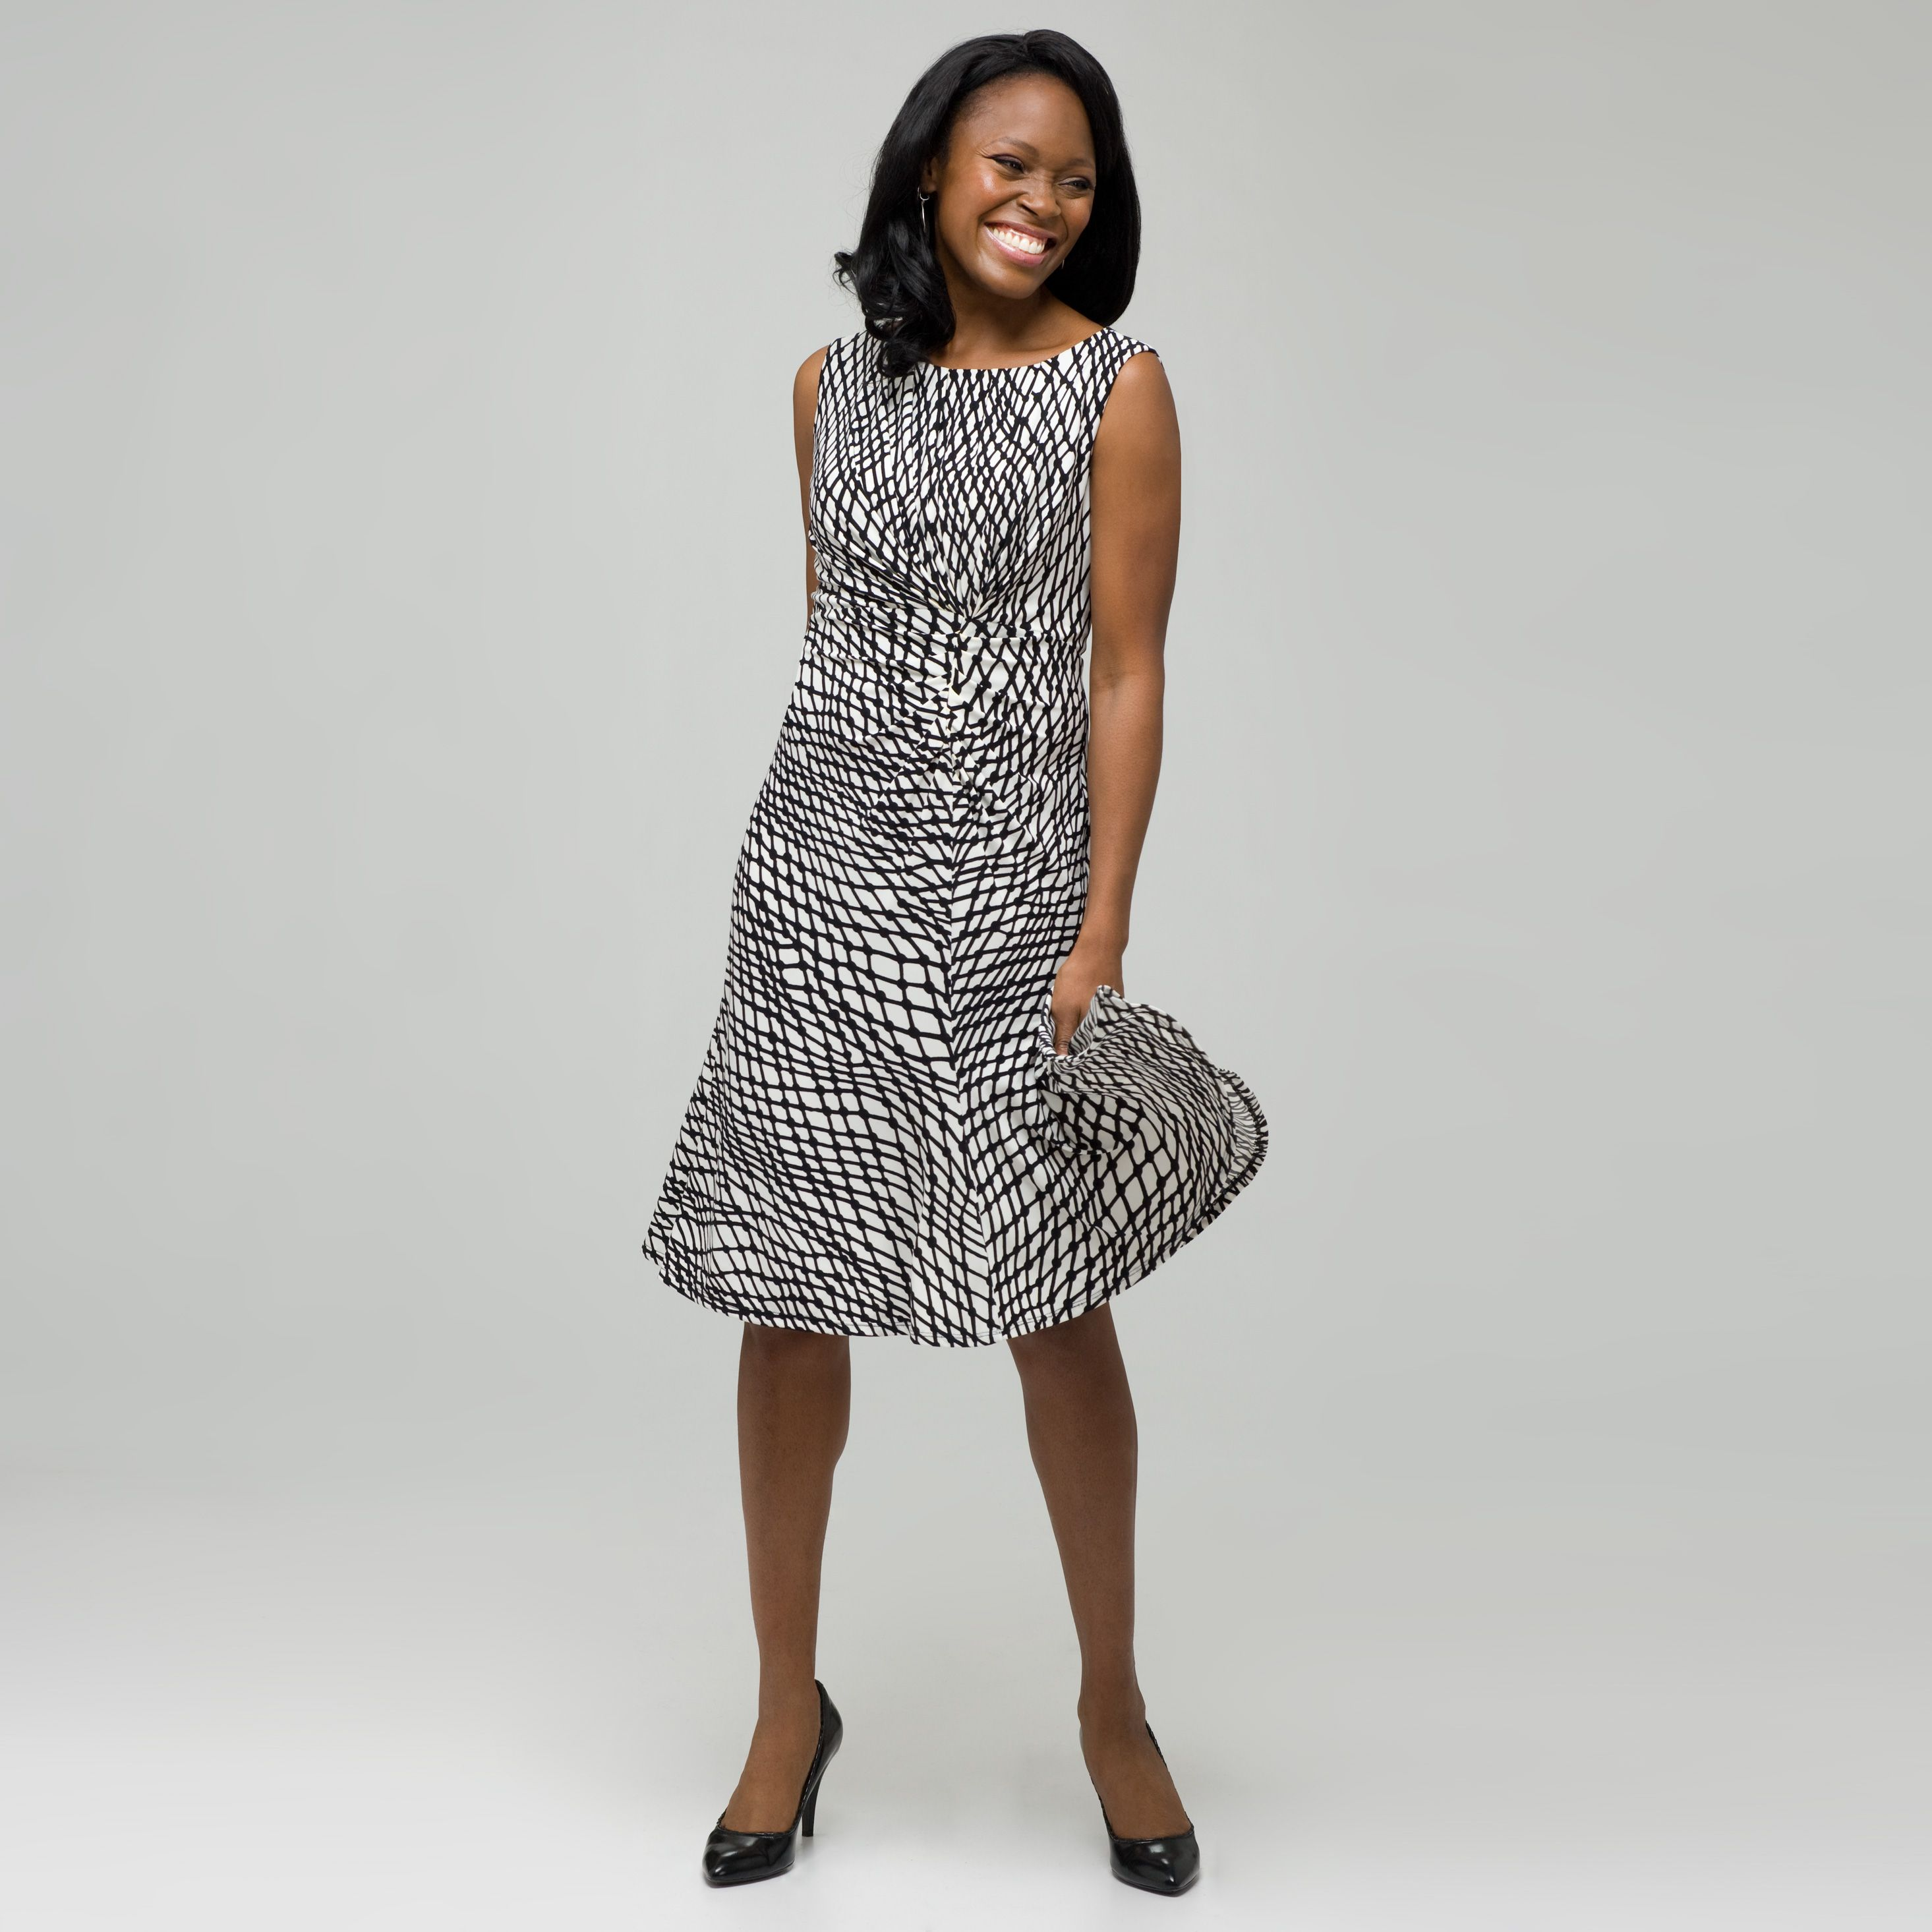 8c65f3b61b Top 10 Dress Styles for Women Over 50 1  FULLER SKIRT Dresses that are  fitted on top and flare on bottom (ie